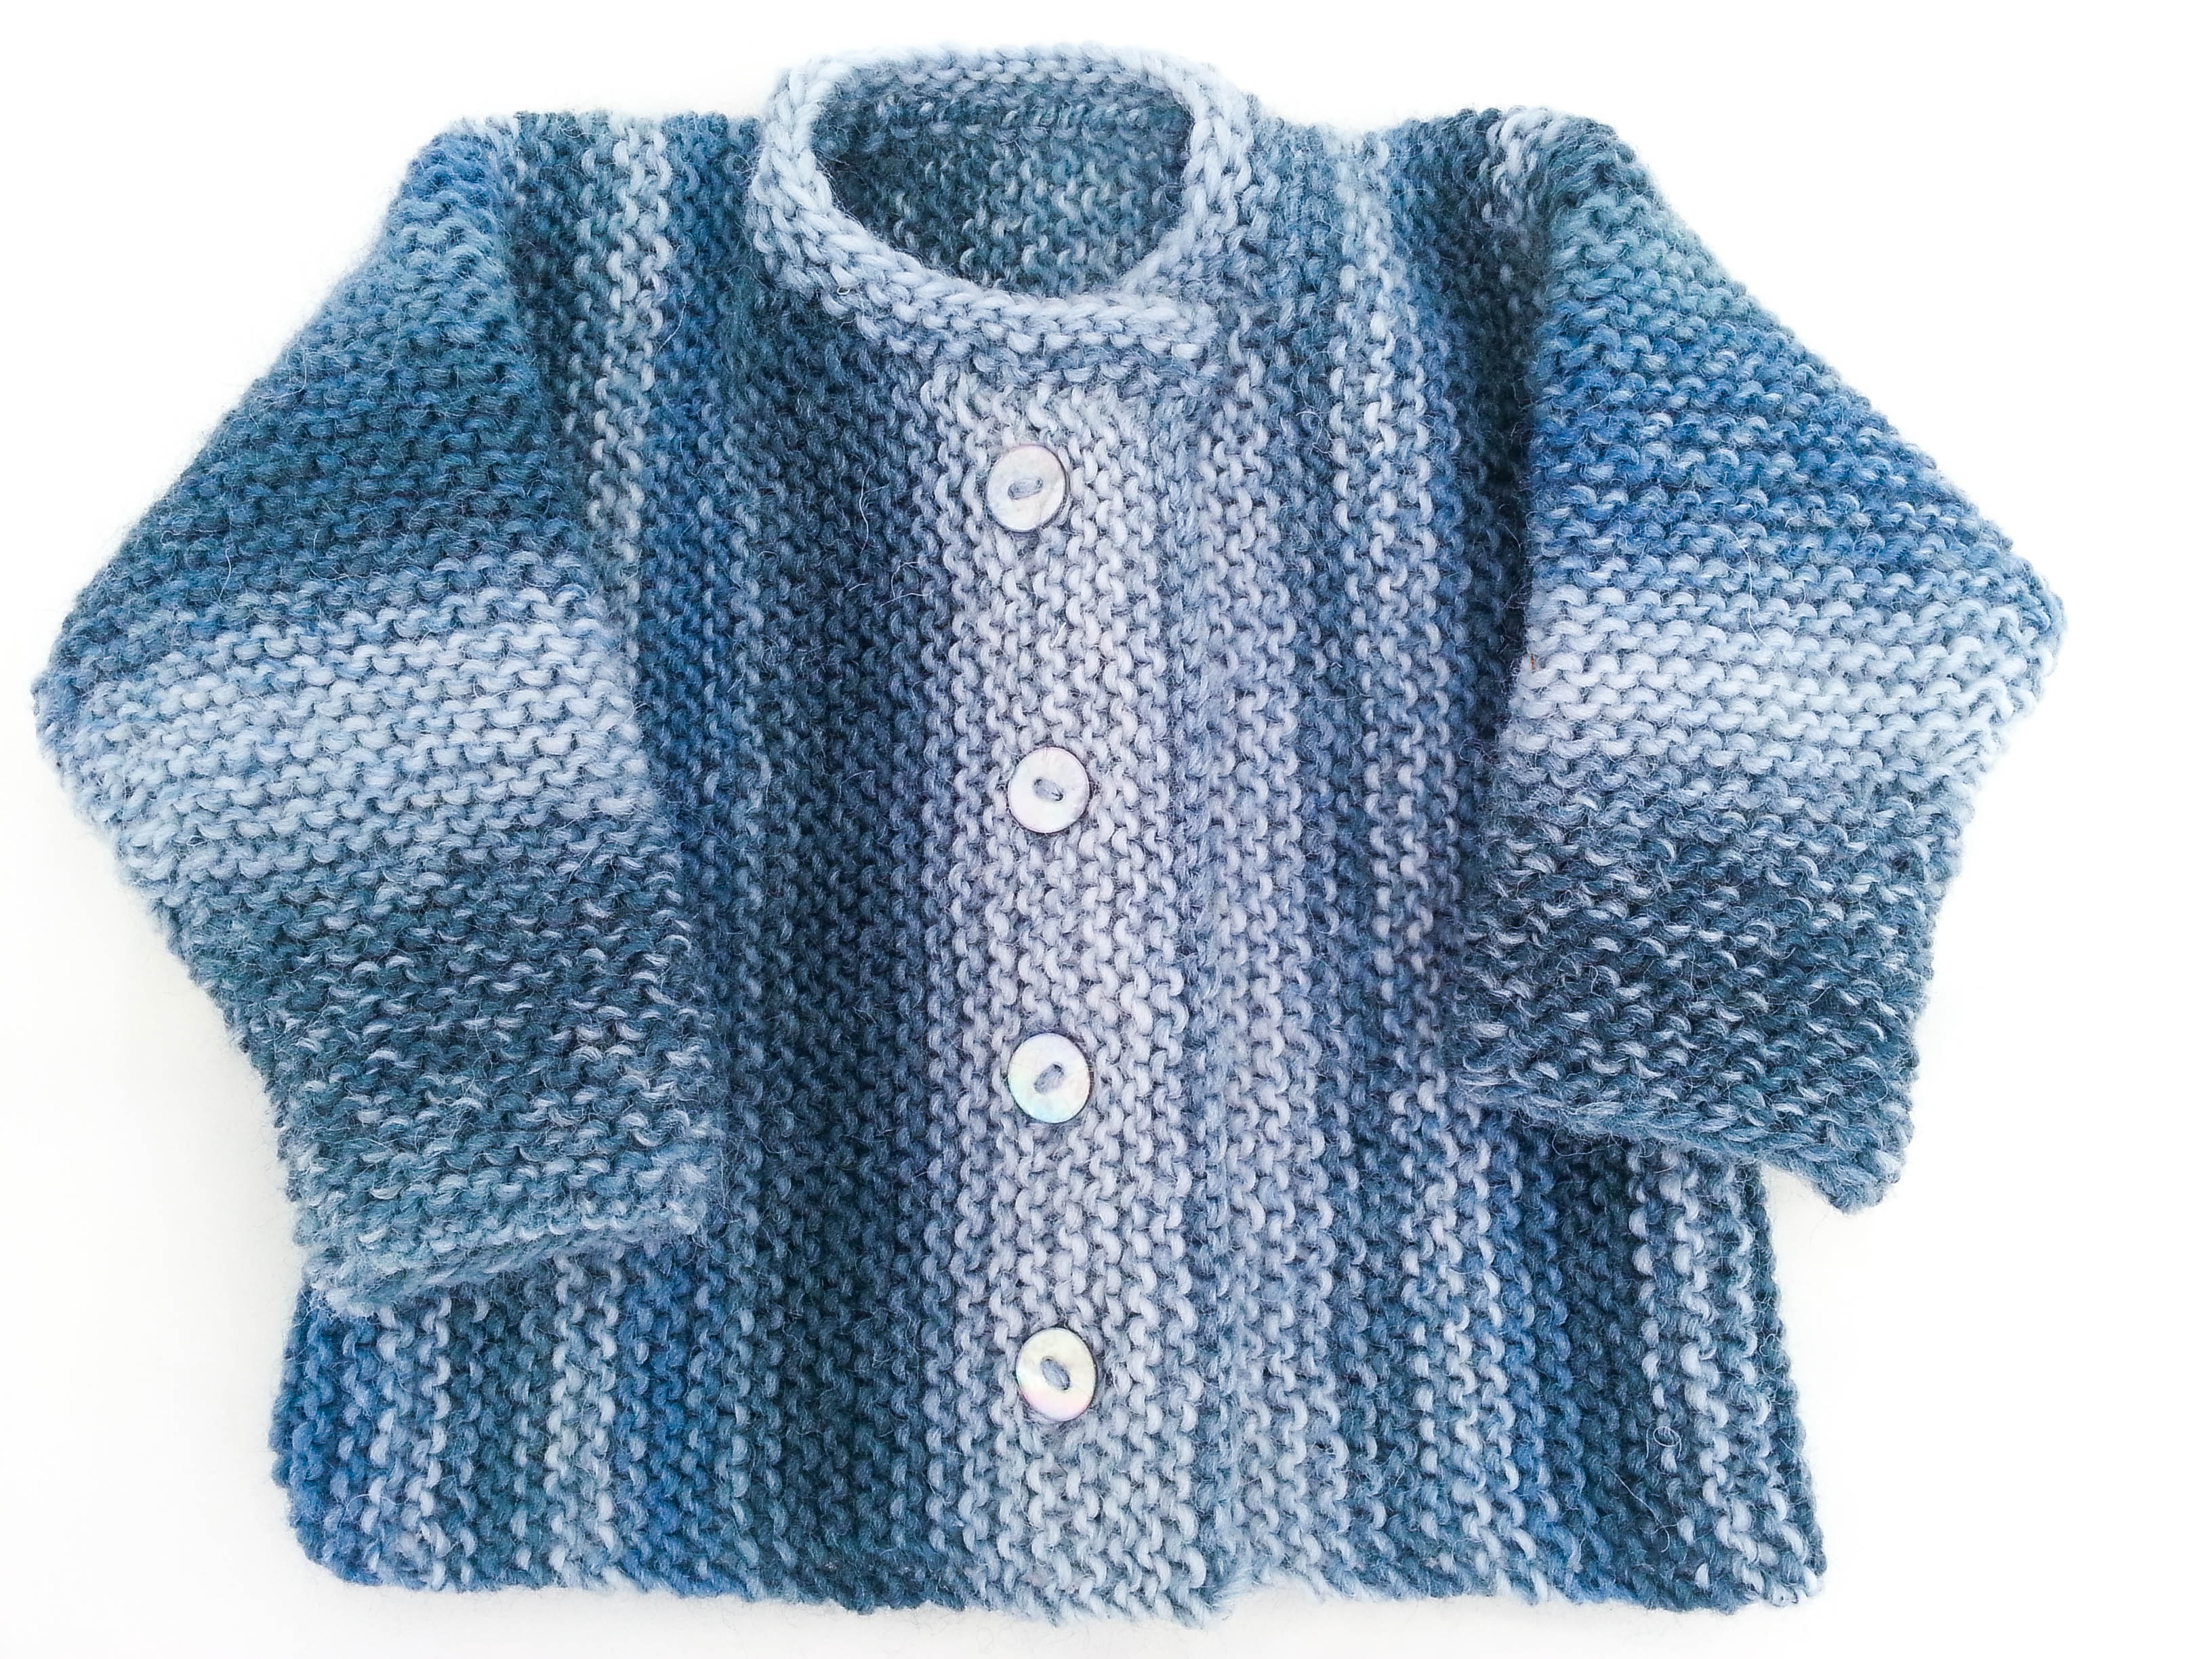 Knitted Jacket Patterns Knitting Pattern Garter Stitch Ba Cardigan One Piece Ba Sweater 5 Sizes Easy Pattern Toddler Buttoned Sweater